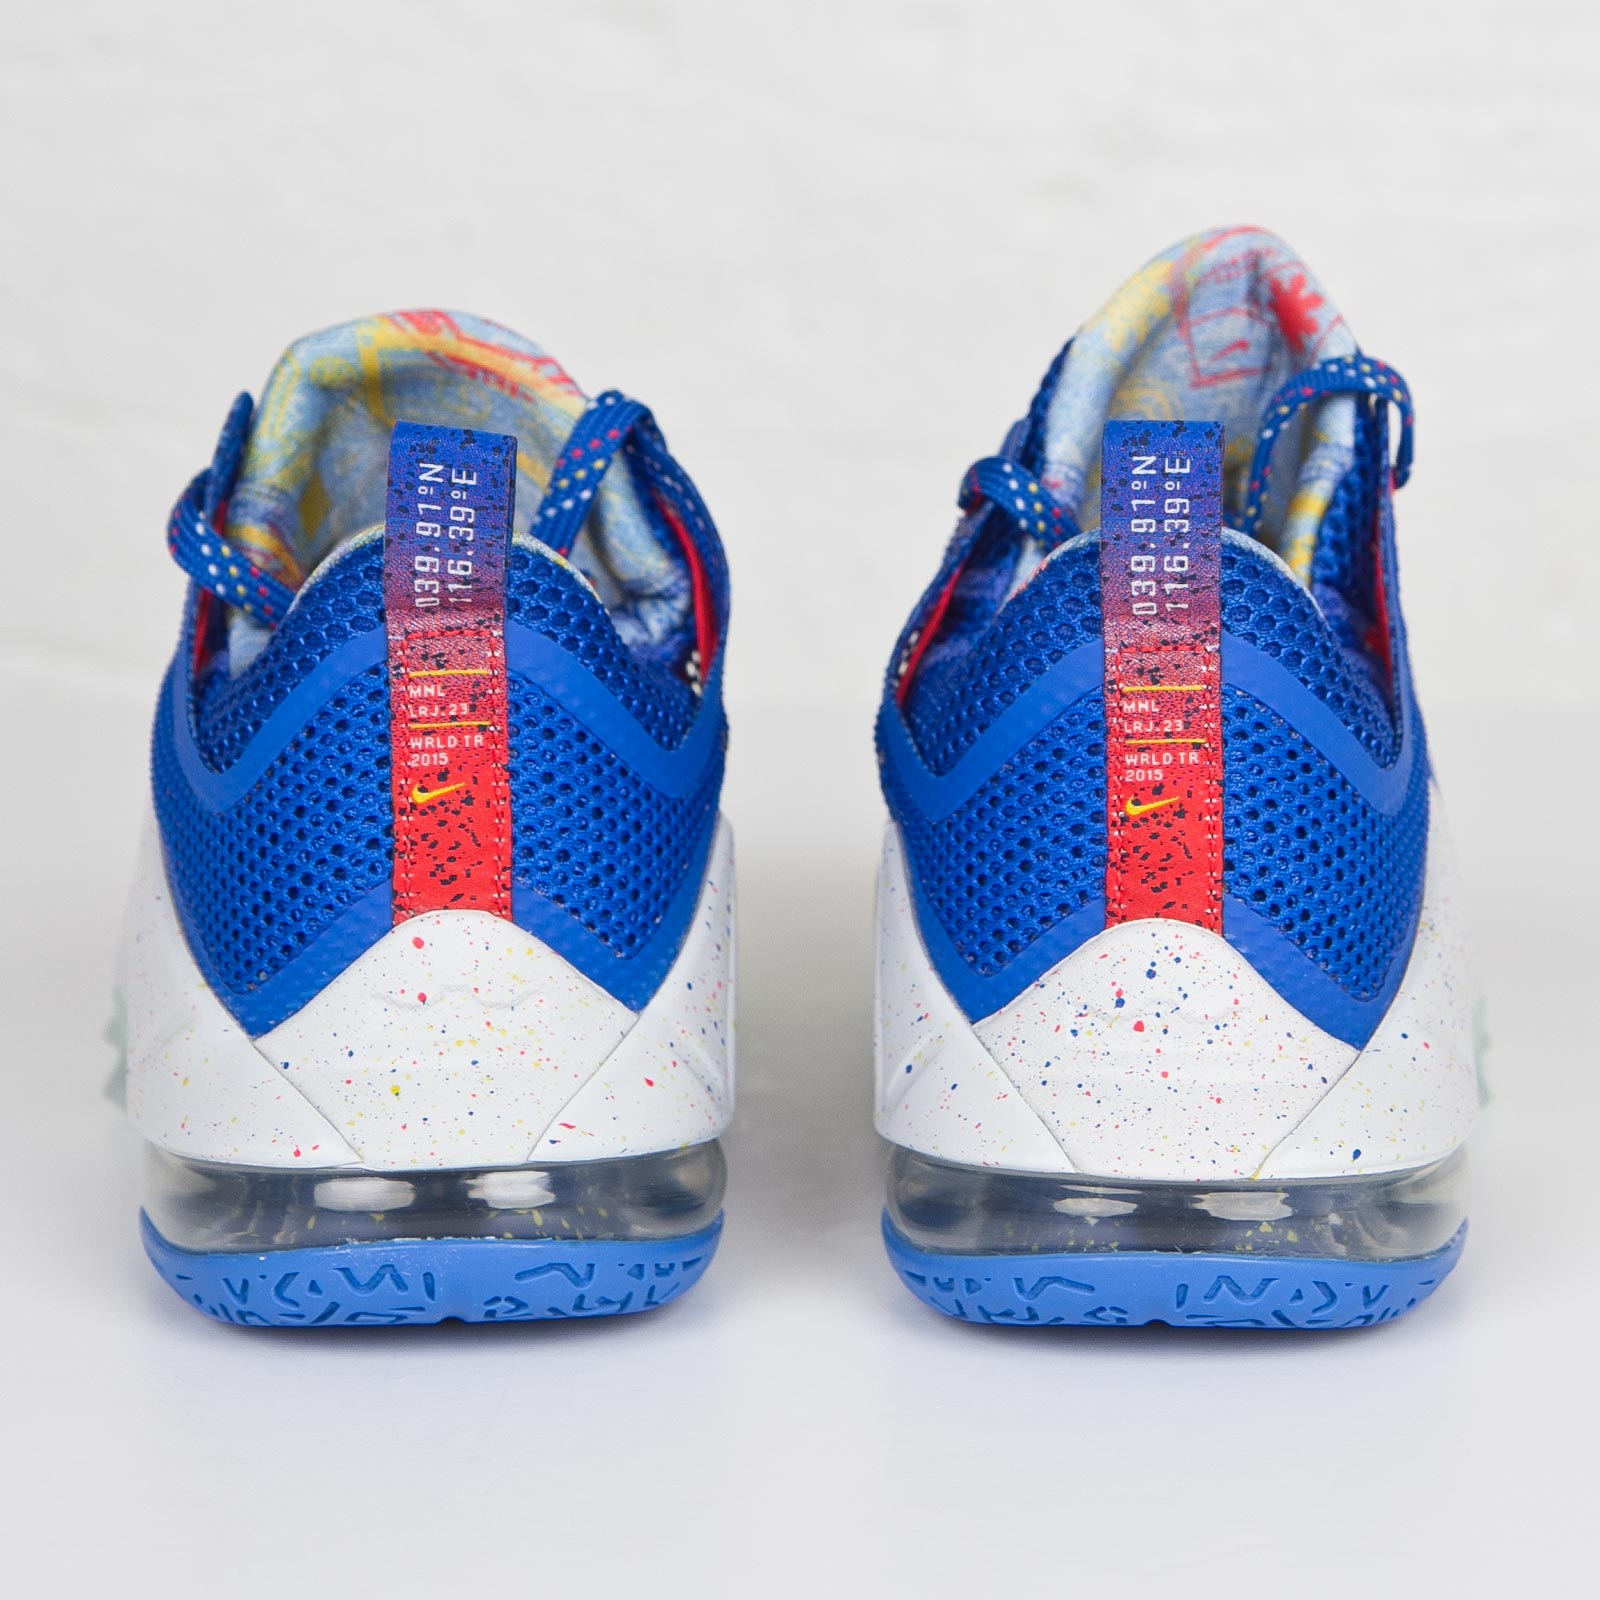 be13547e39d Nike Lebron XII Low Limited - 812560-406 - Sneakersnstuff